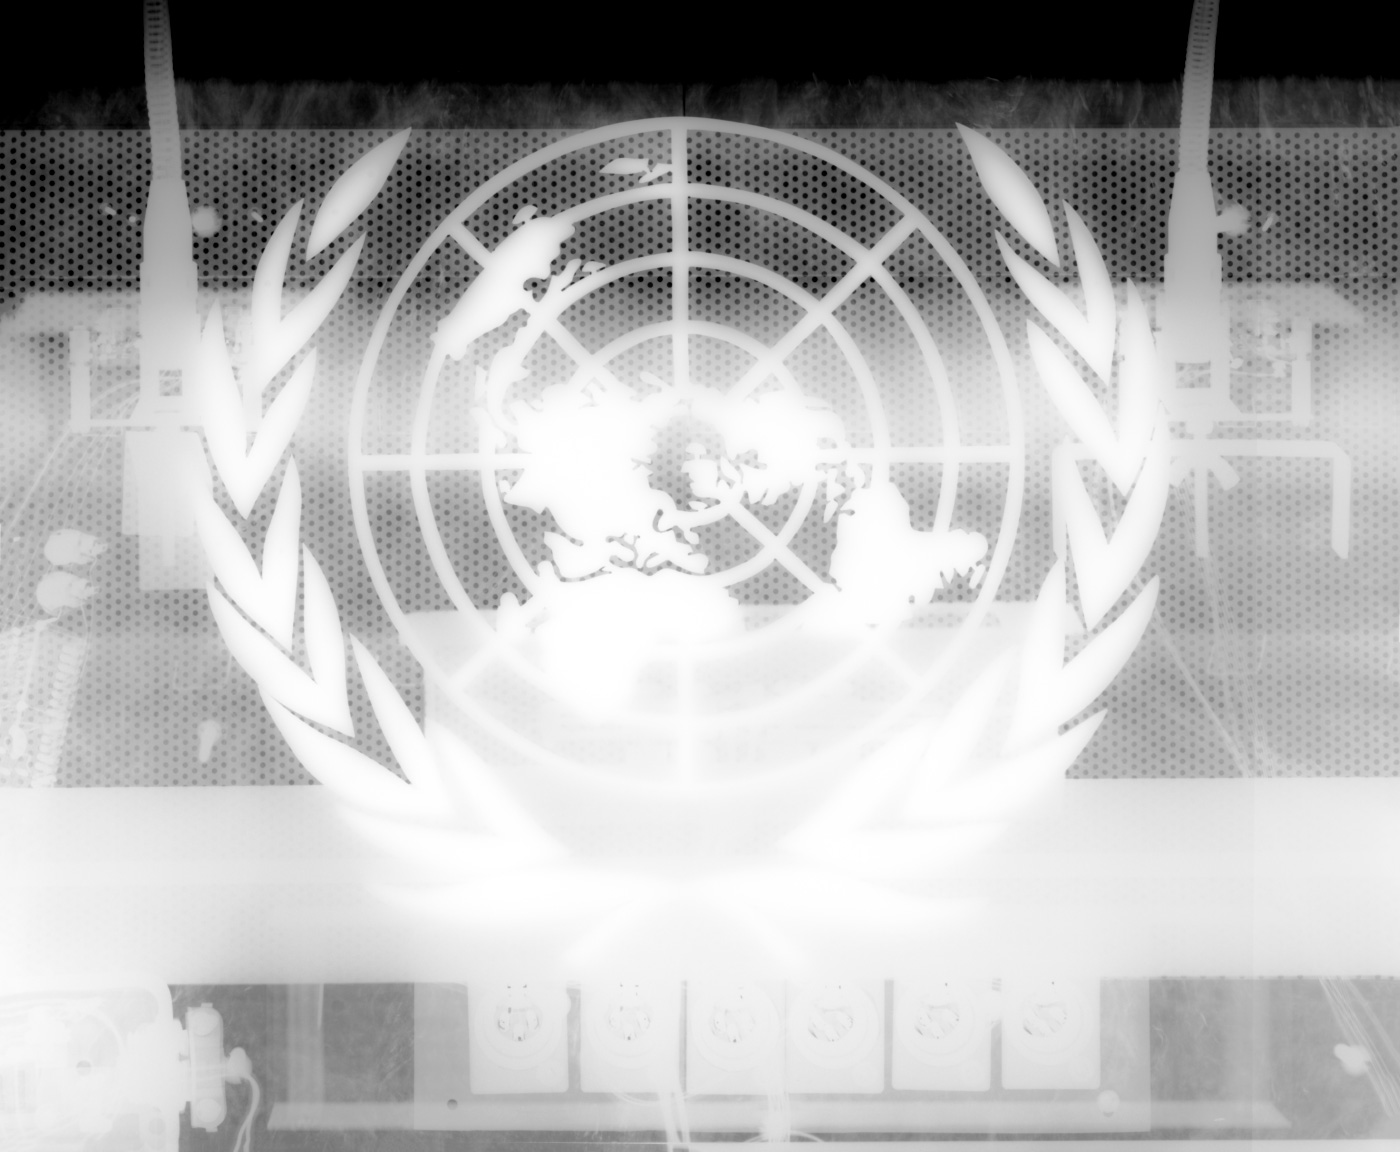 An x-ray of a podium depicting the United Nations seal